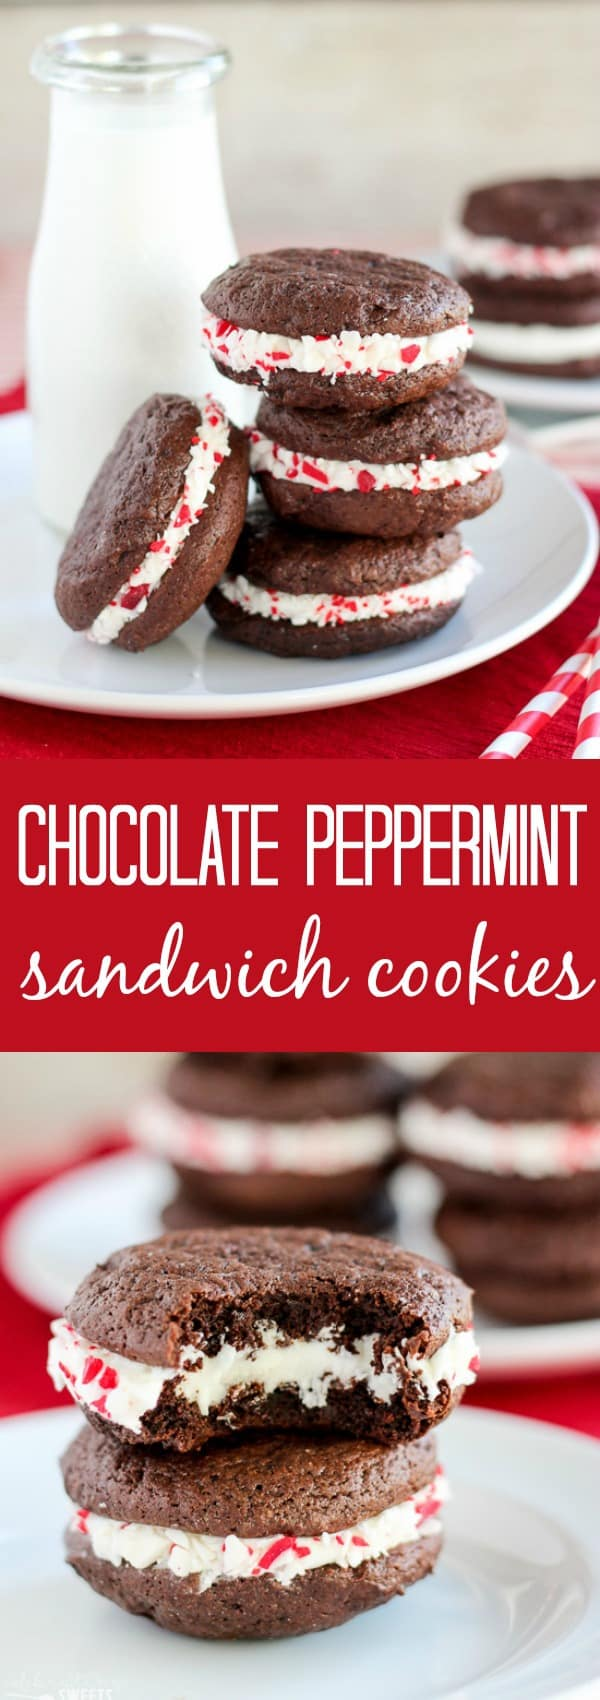 Chocolate Peppermint Sandwich Cookies - Soft chocolate cookies sandwiching peppermint frosting and rolled in crushed peppermint candies. A festive cookie for the holidays!